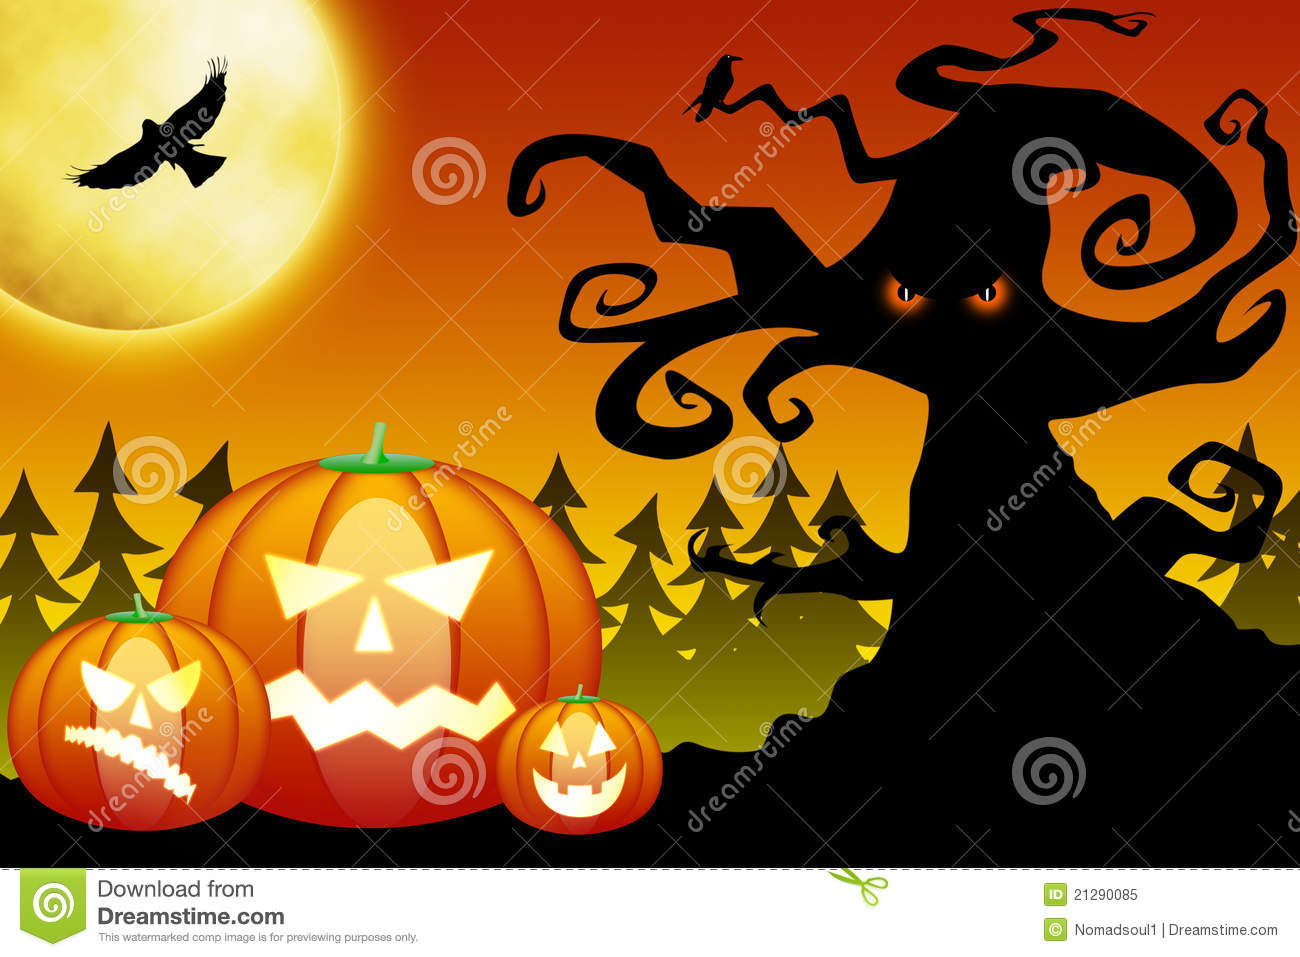 halloween pumpkins in scary forest stock illustration - illustration